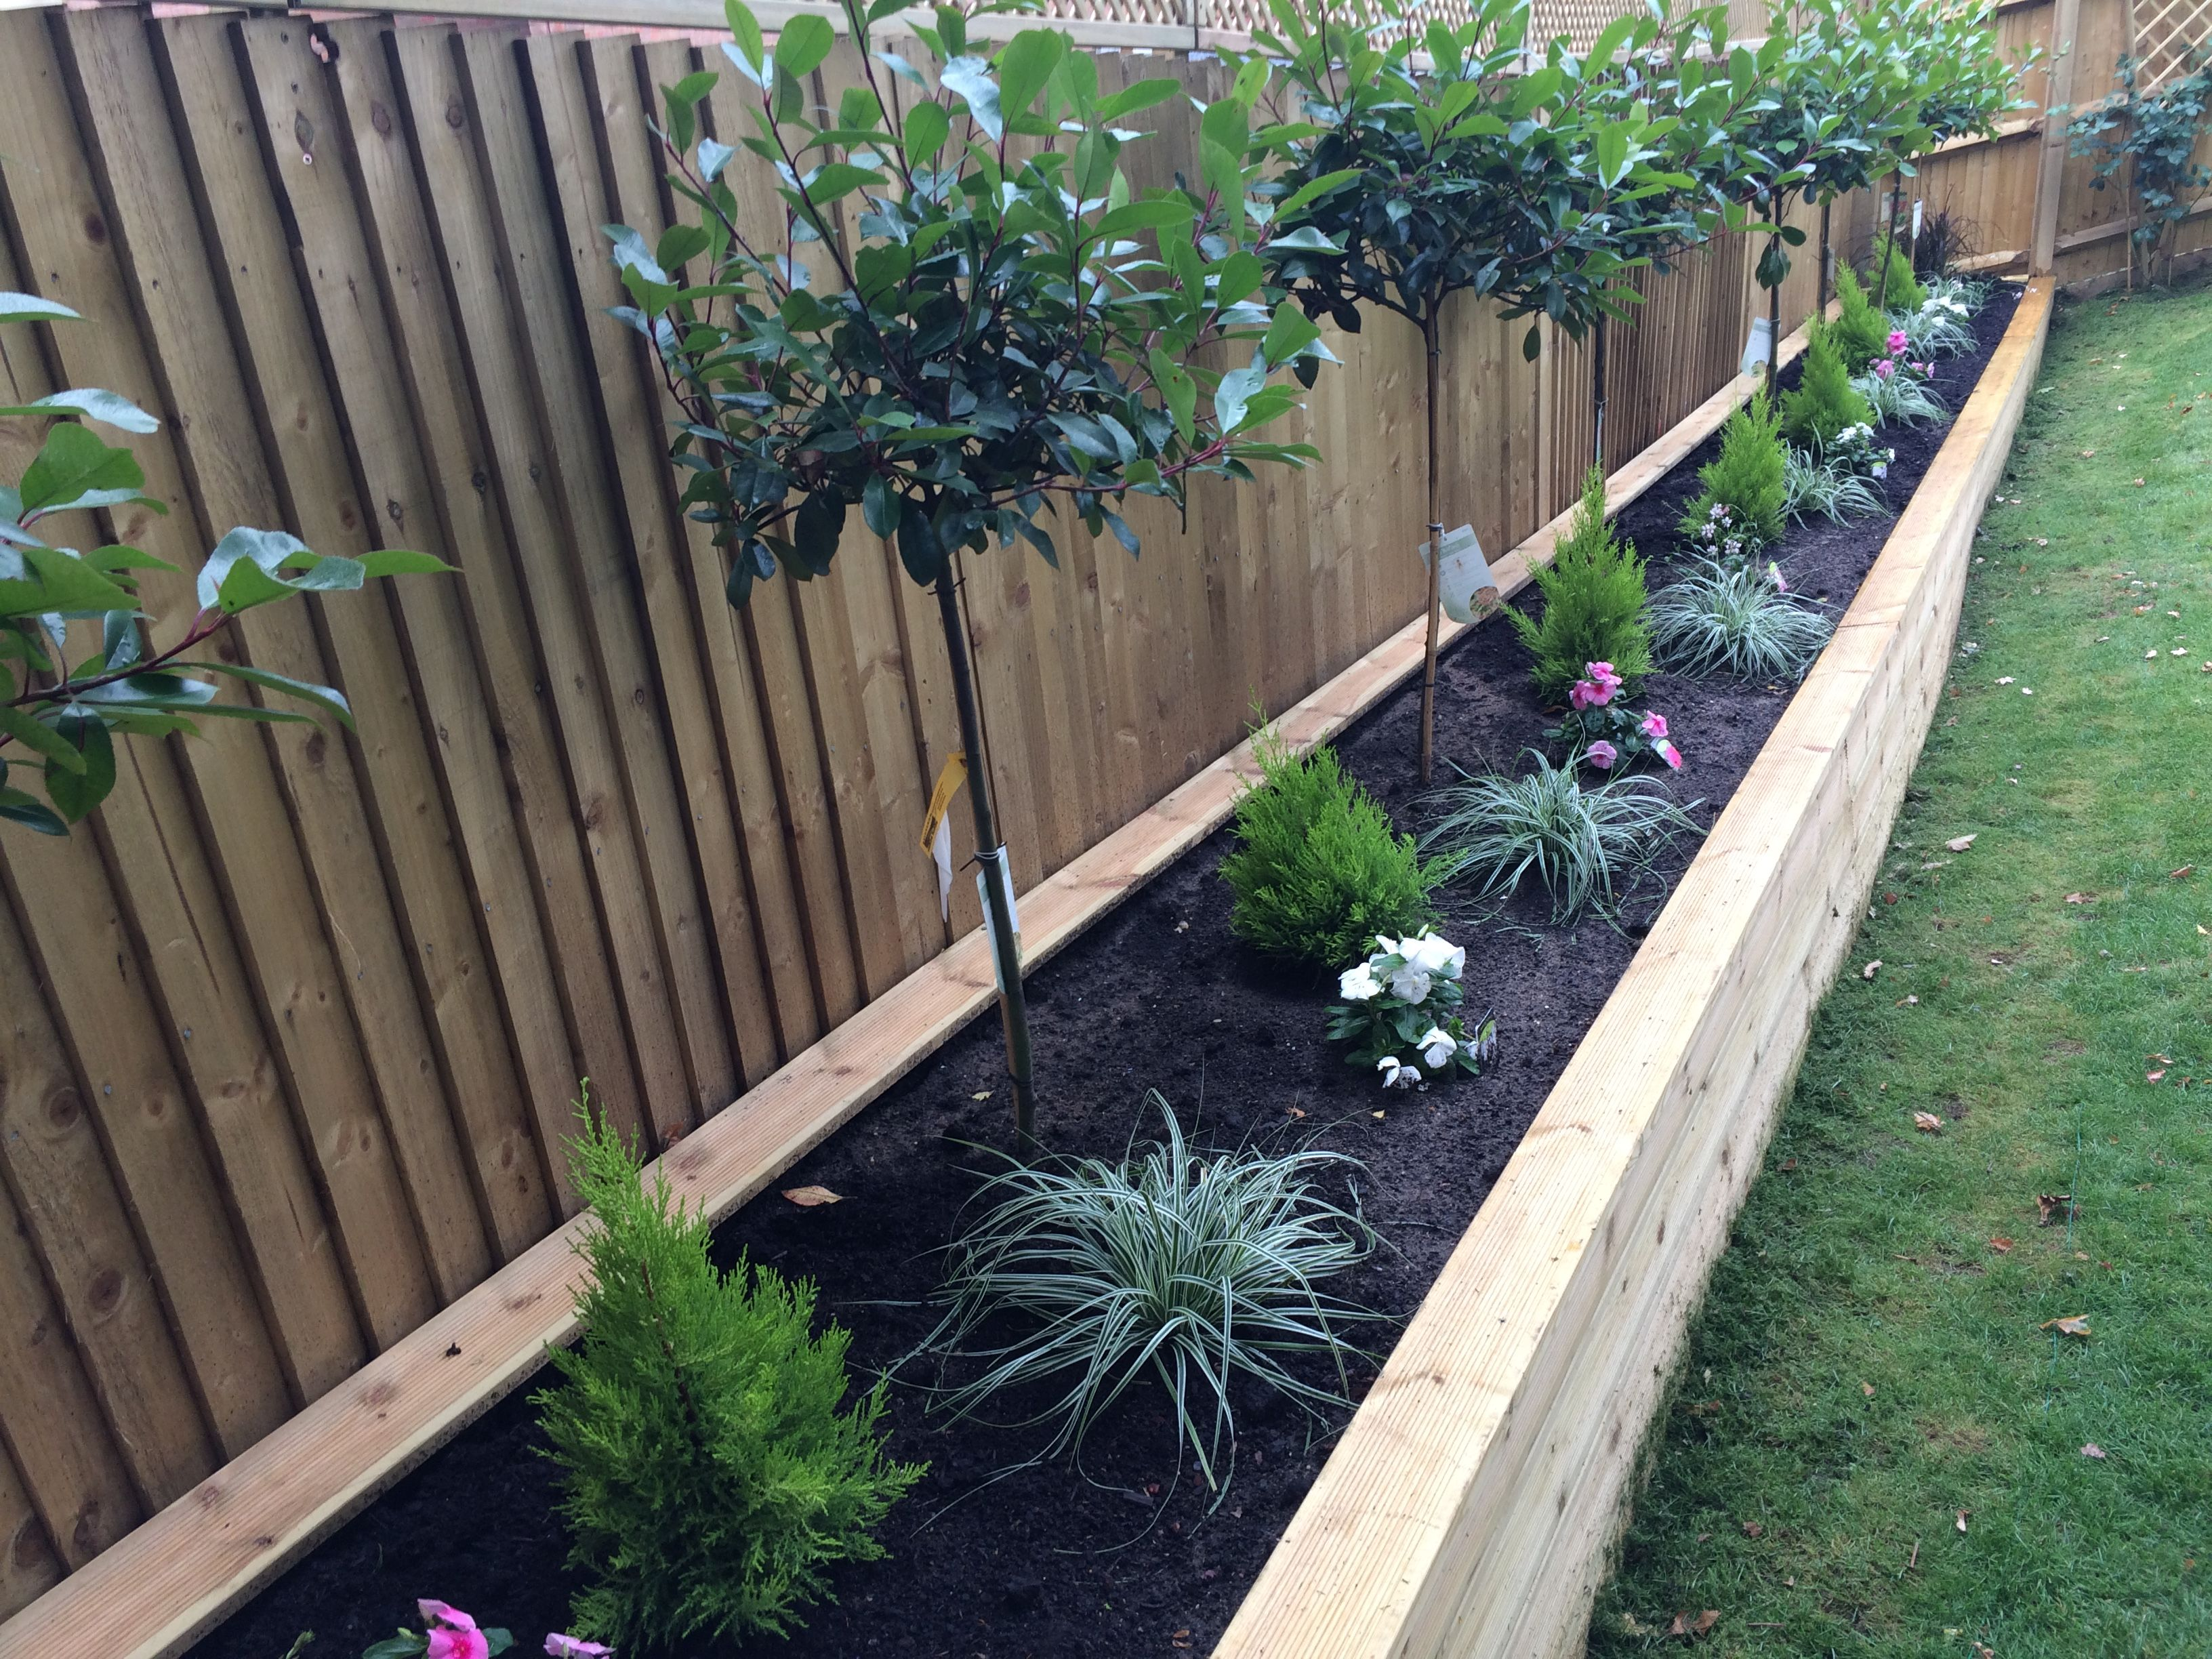 A Raised Wooden Flower Bed With Red Robin Trees, Conifers U0026 Plants.